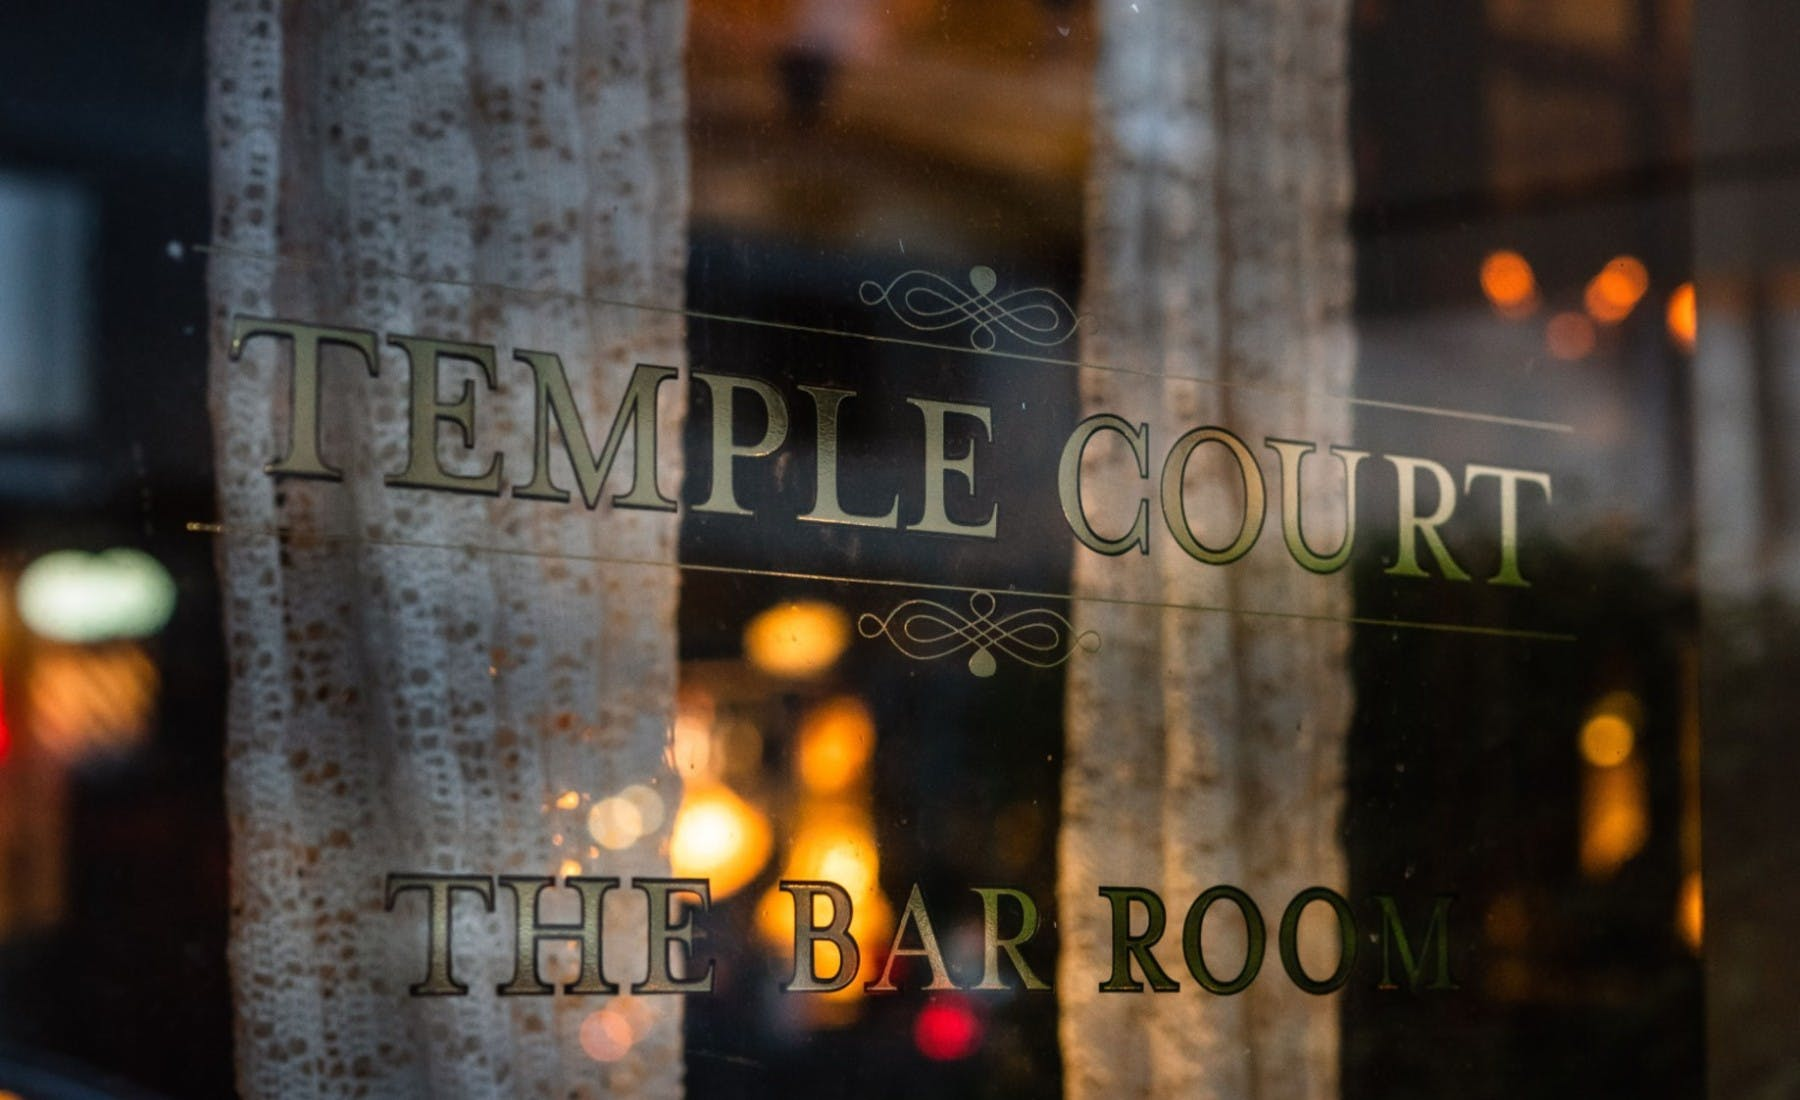 the Temple Court sign on the window